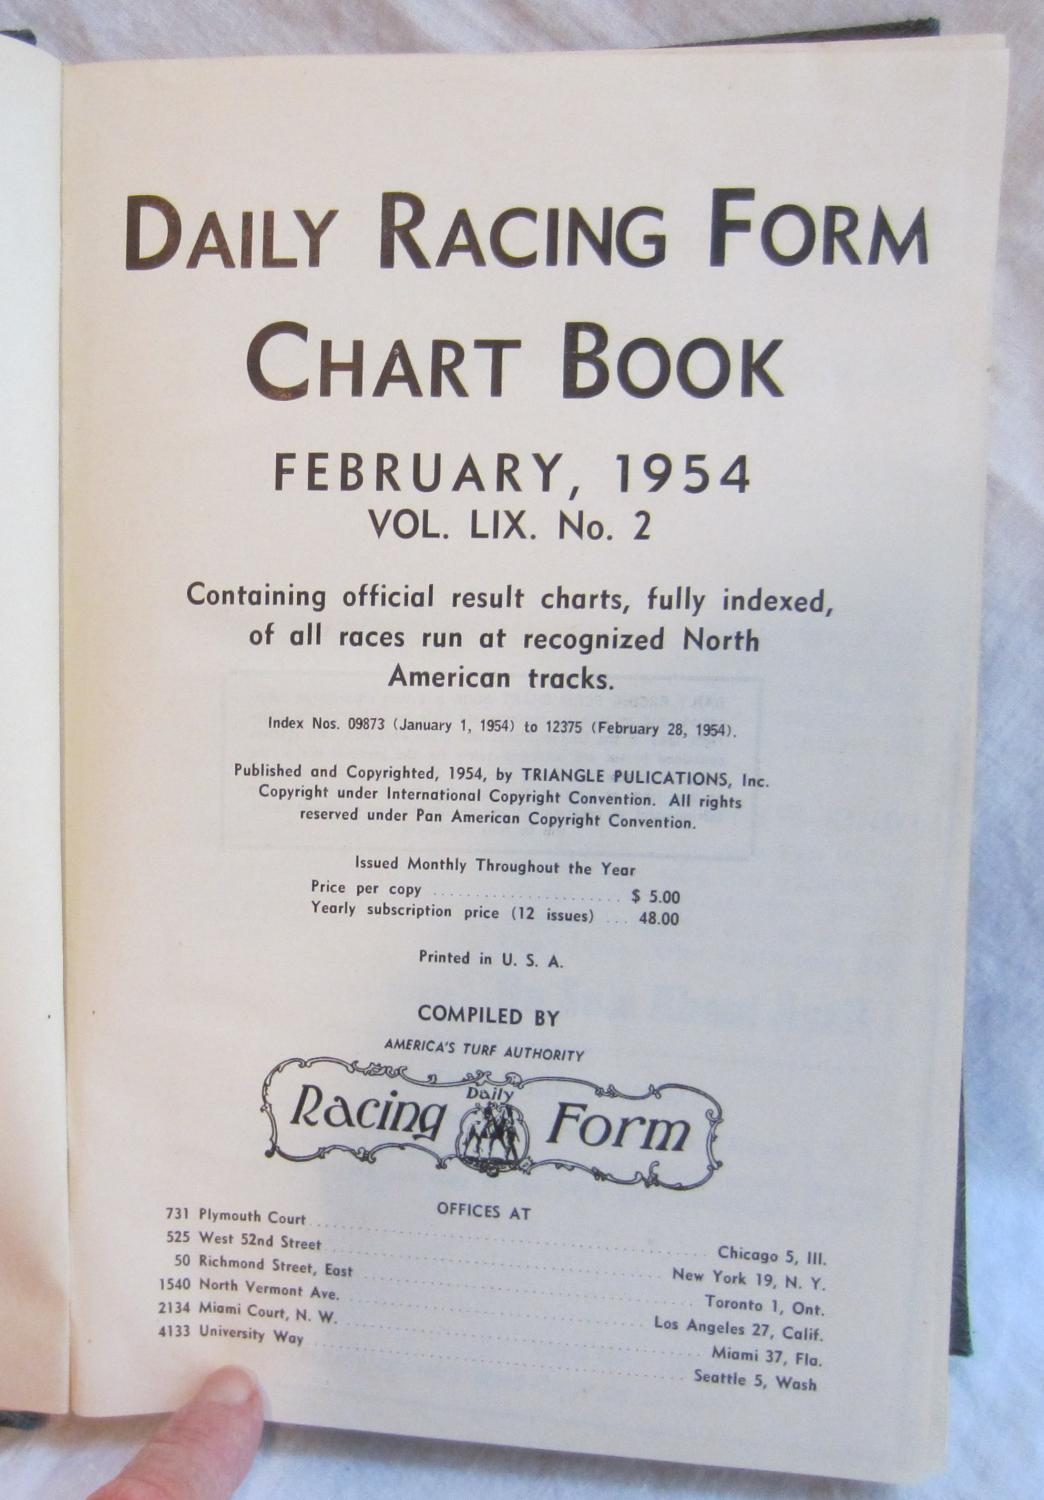 DAILY RACING FORM CHART BOOKS - February,